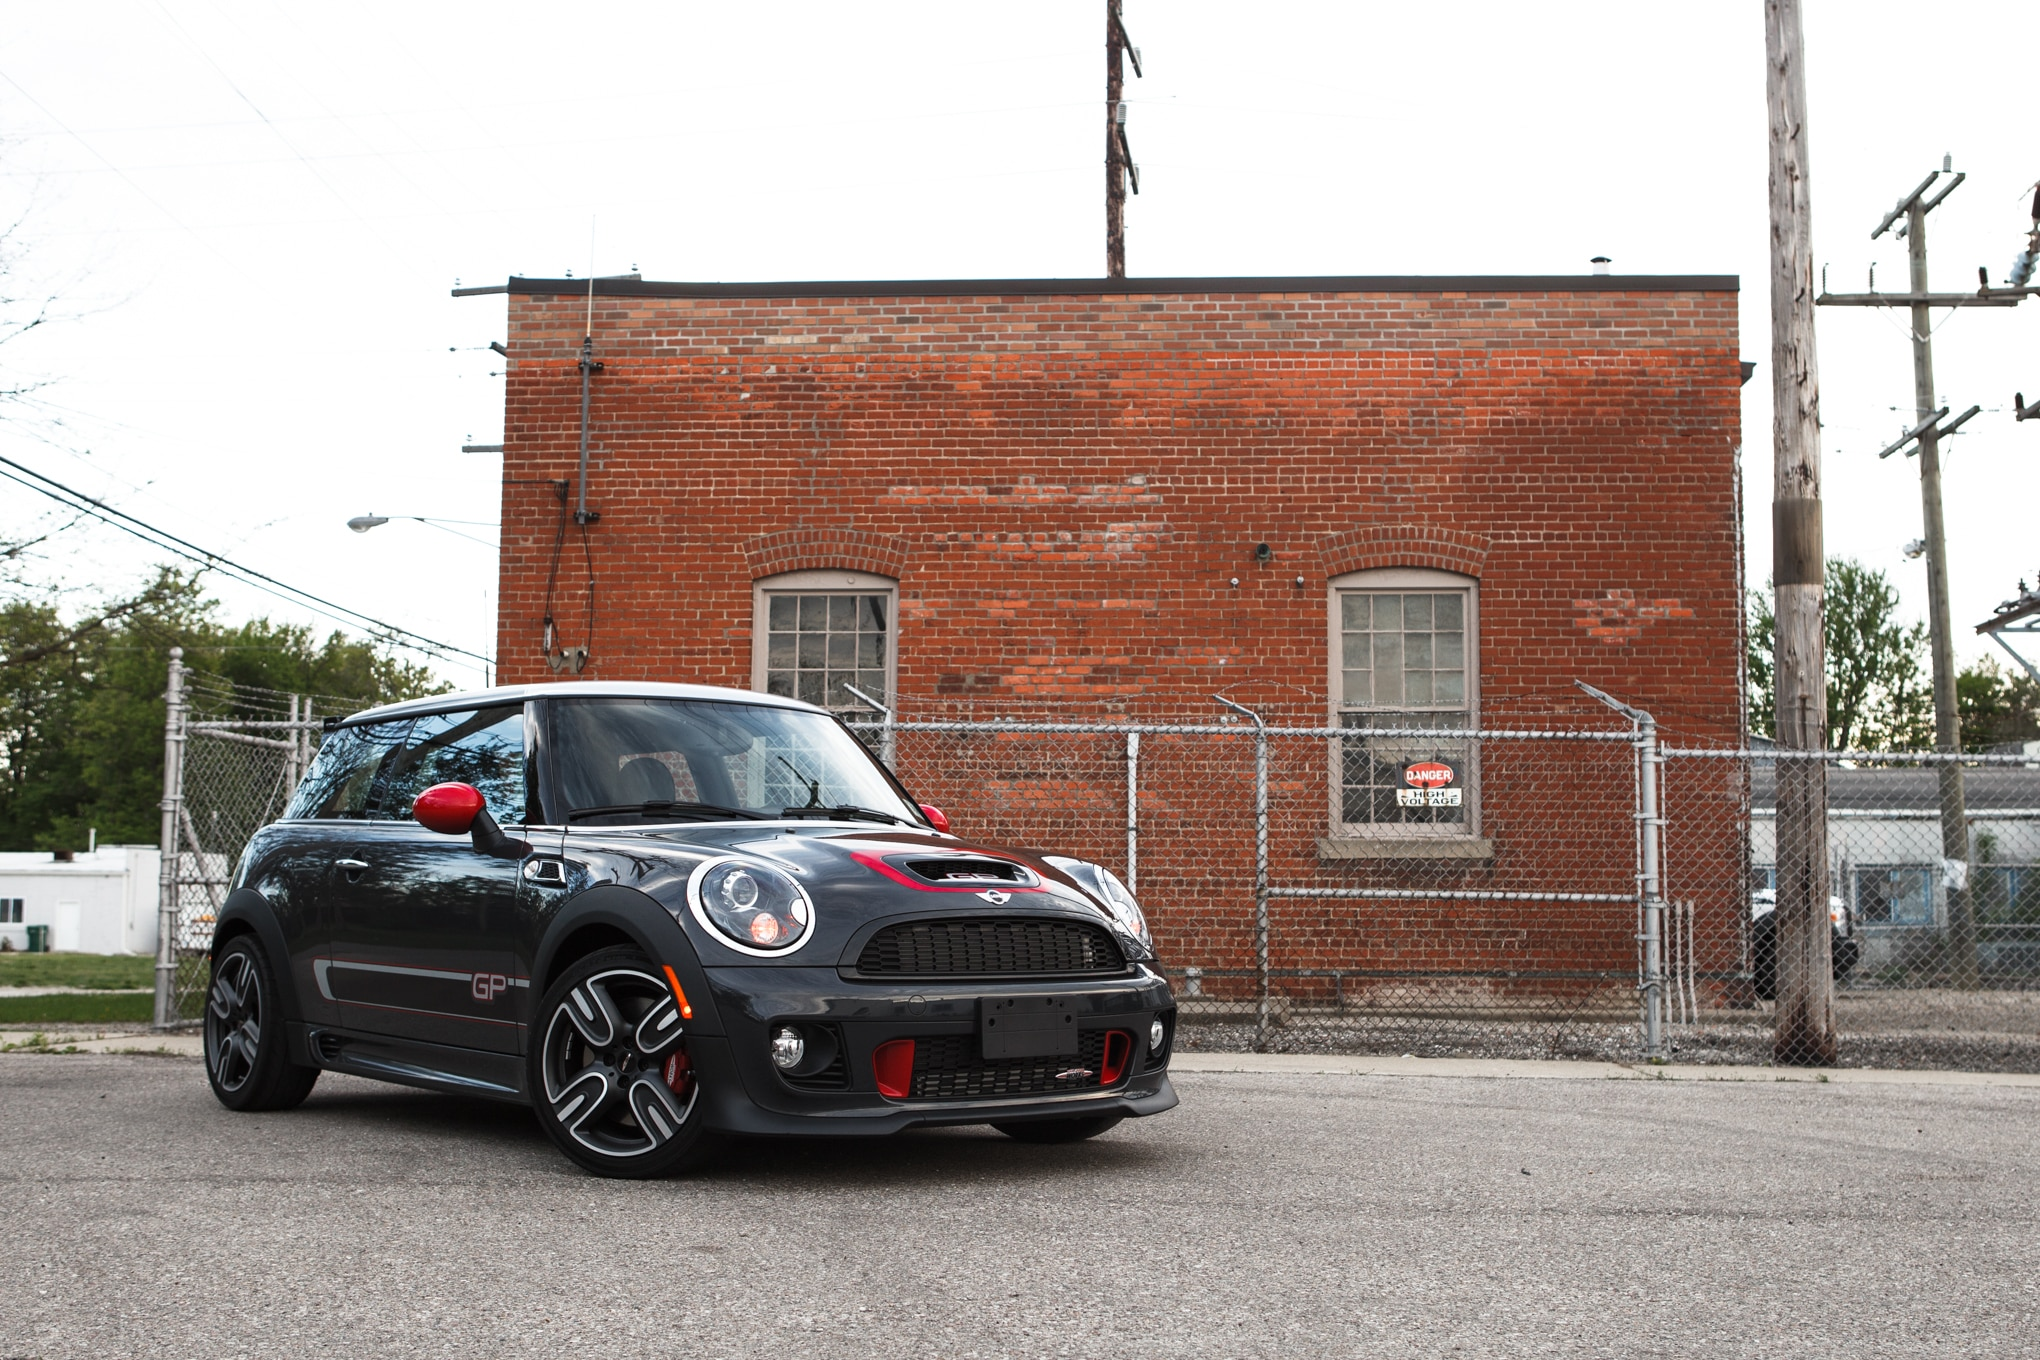 2013 Mini John Cooper Works GP Front Right View 11